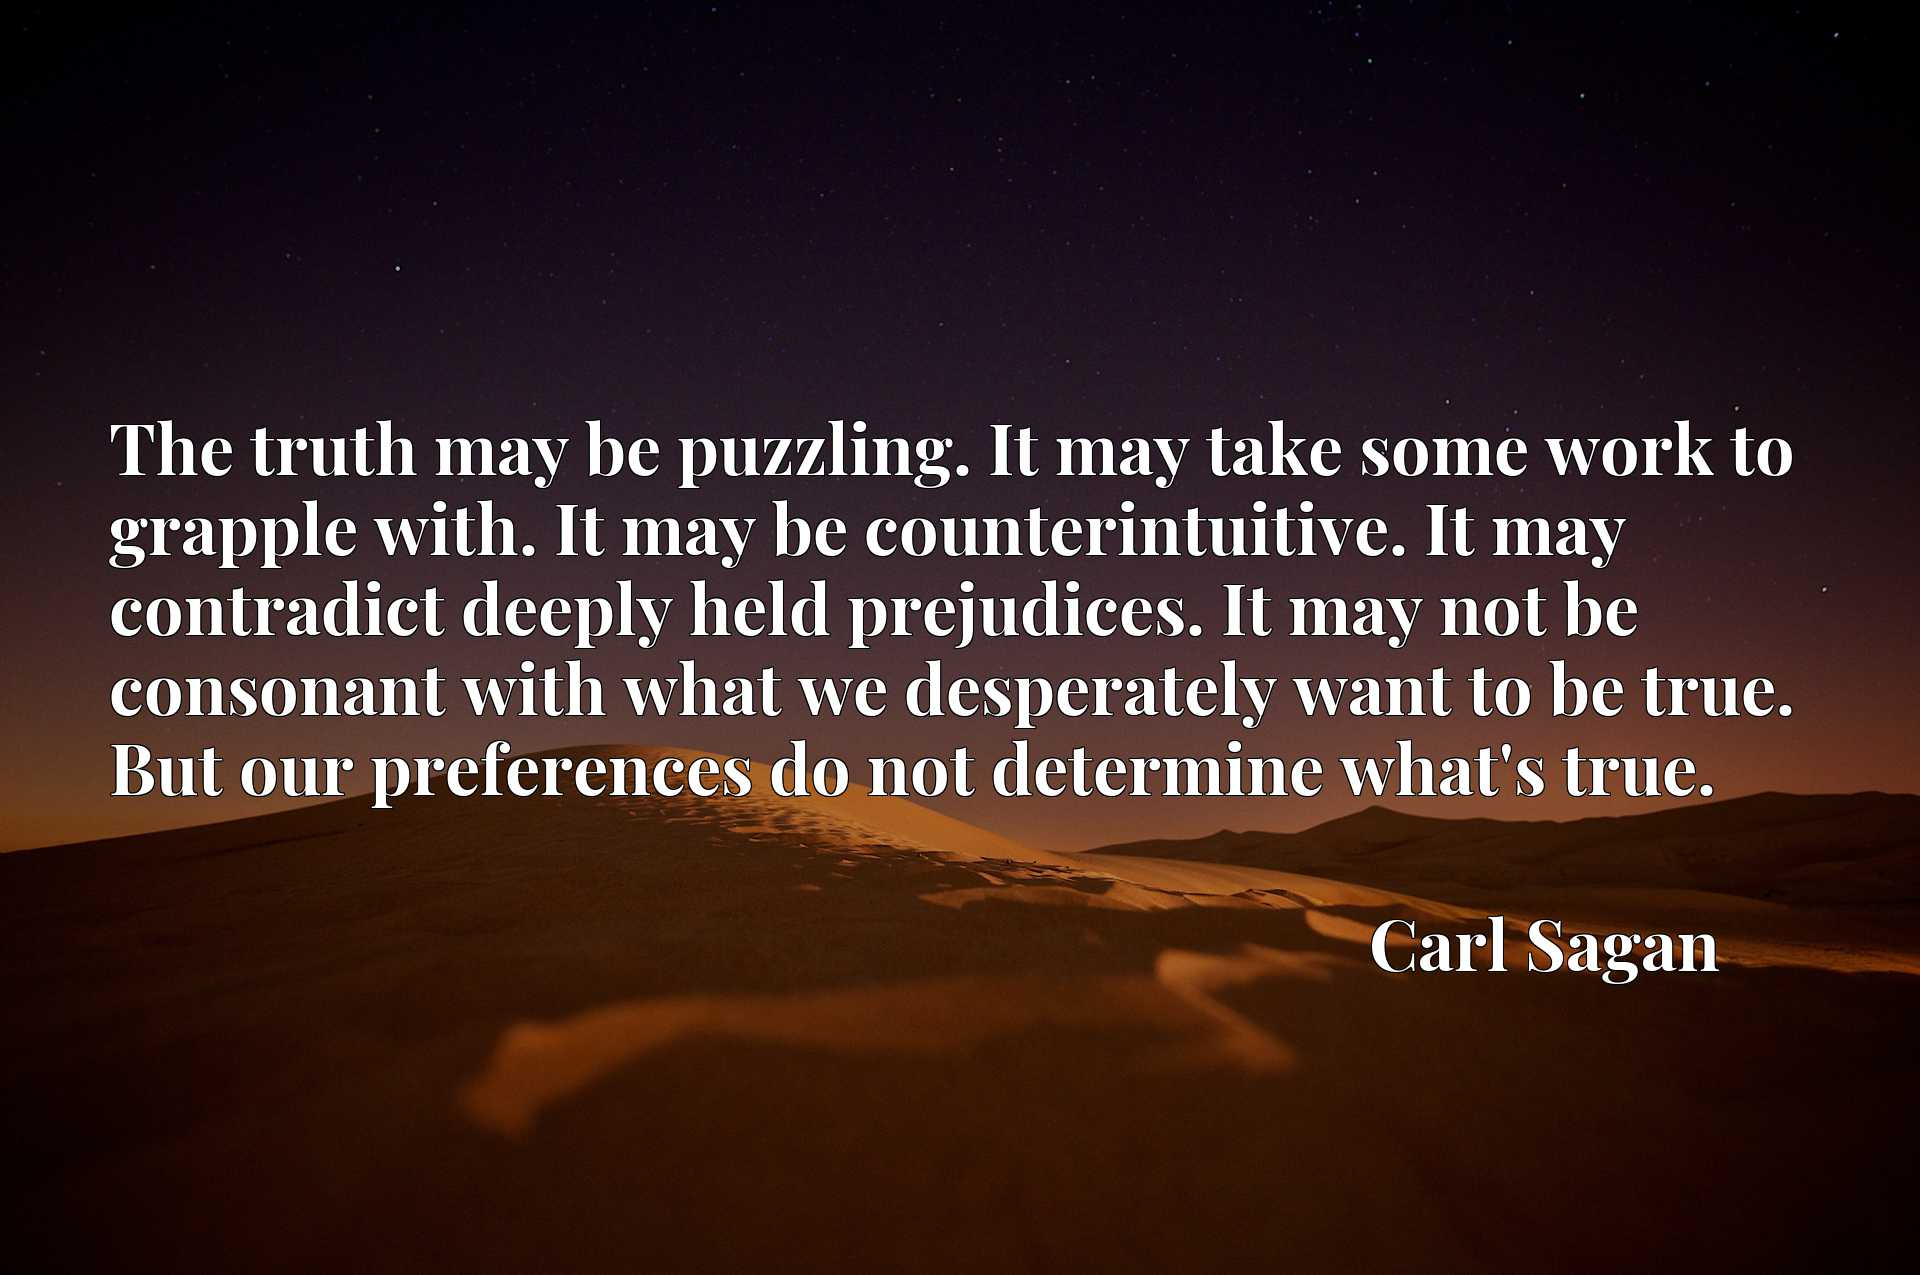 The truth may be puzzling. It may take some work to grapple with. It may be counterintuitive. It may contradict deeply held prejudices. It may not be consonant with what we desperately want to be true. But our preferences do not determine what's true.